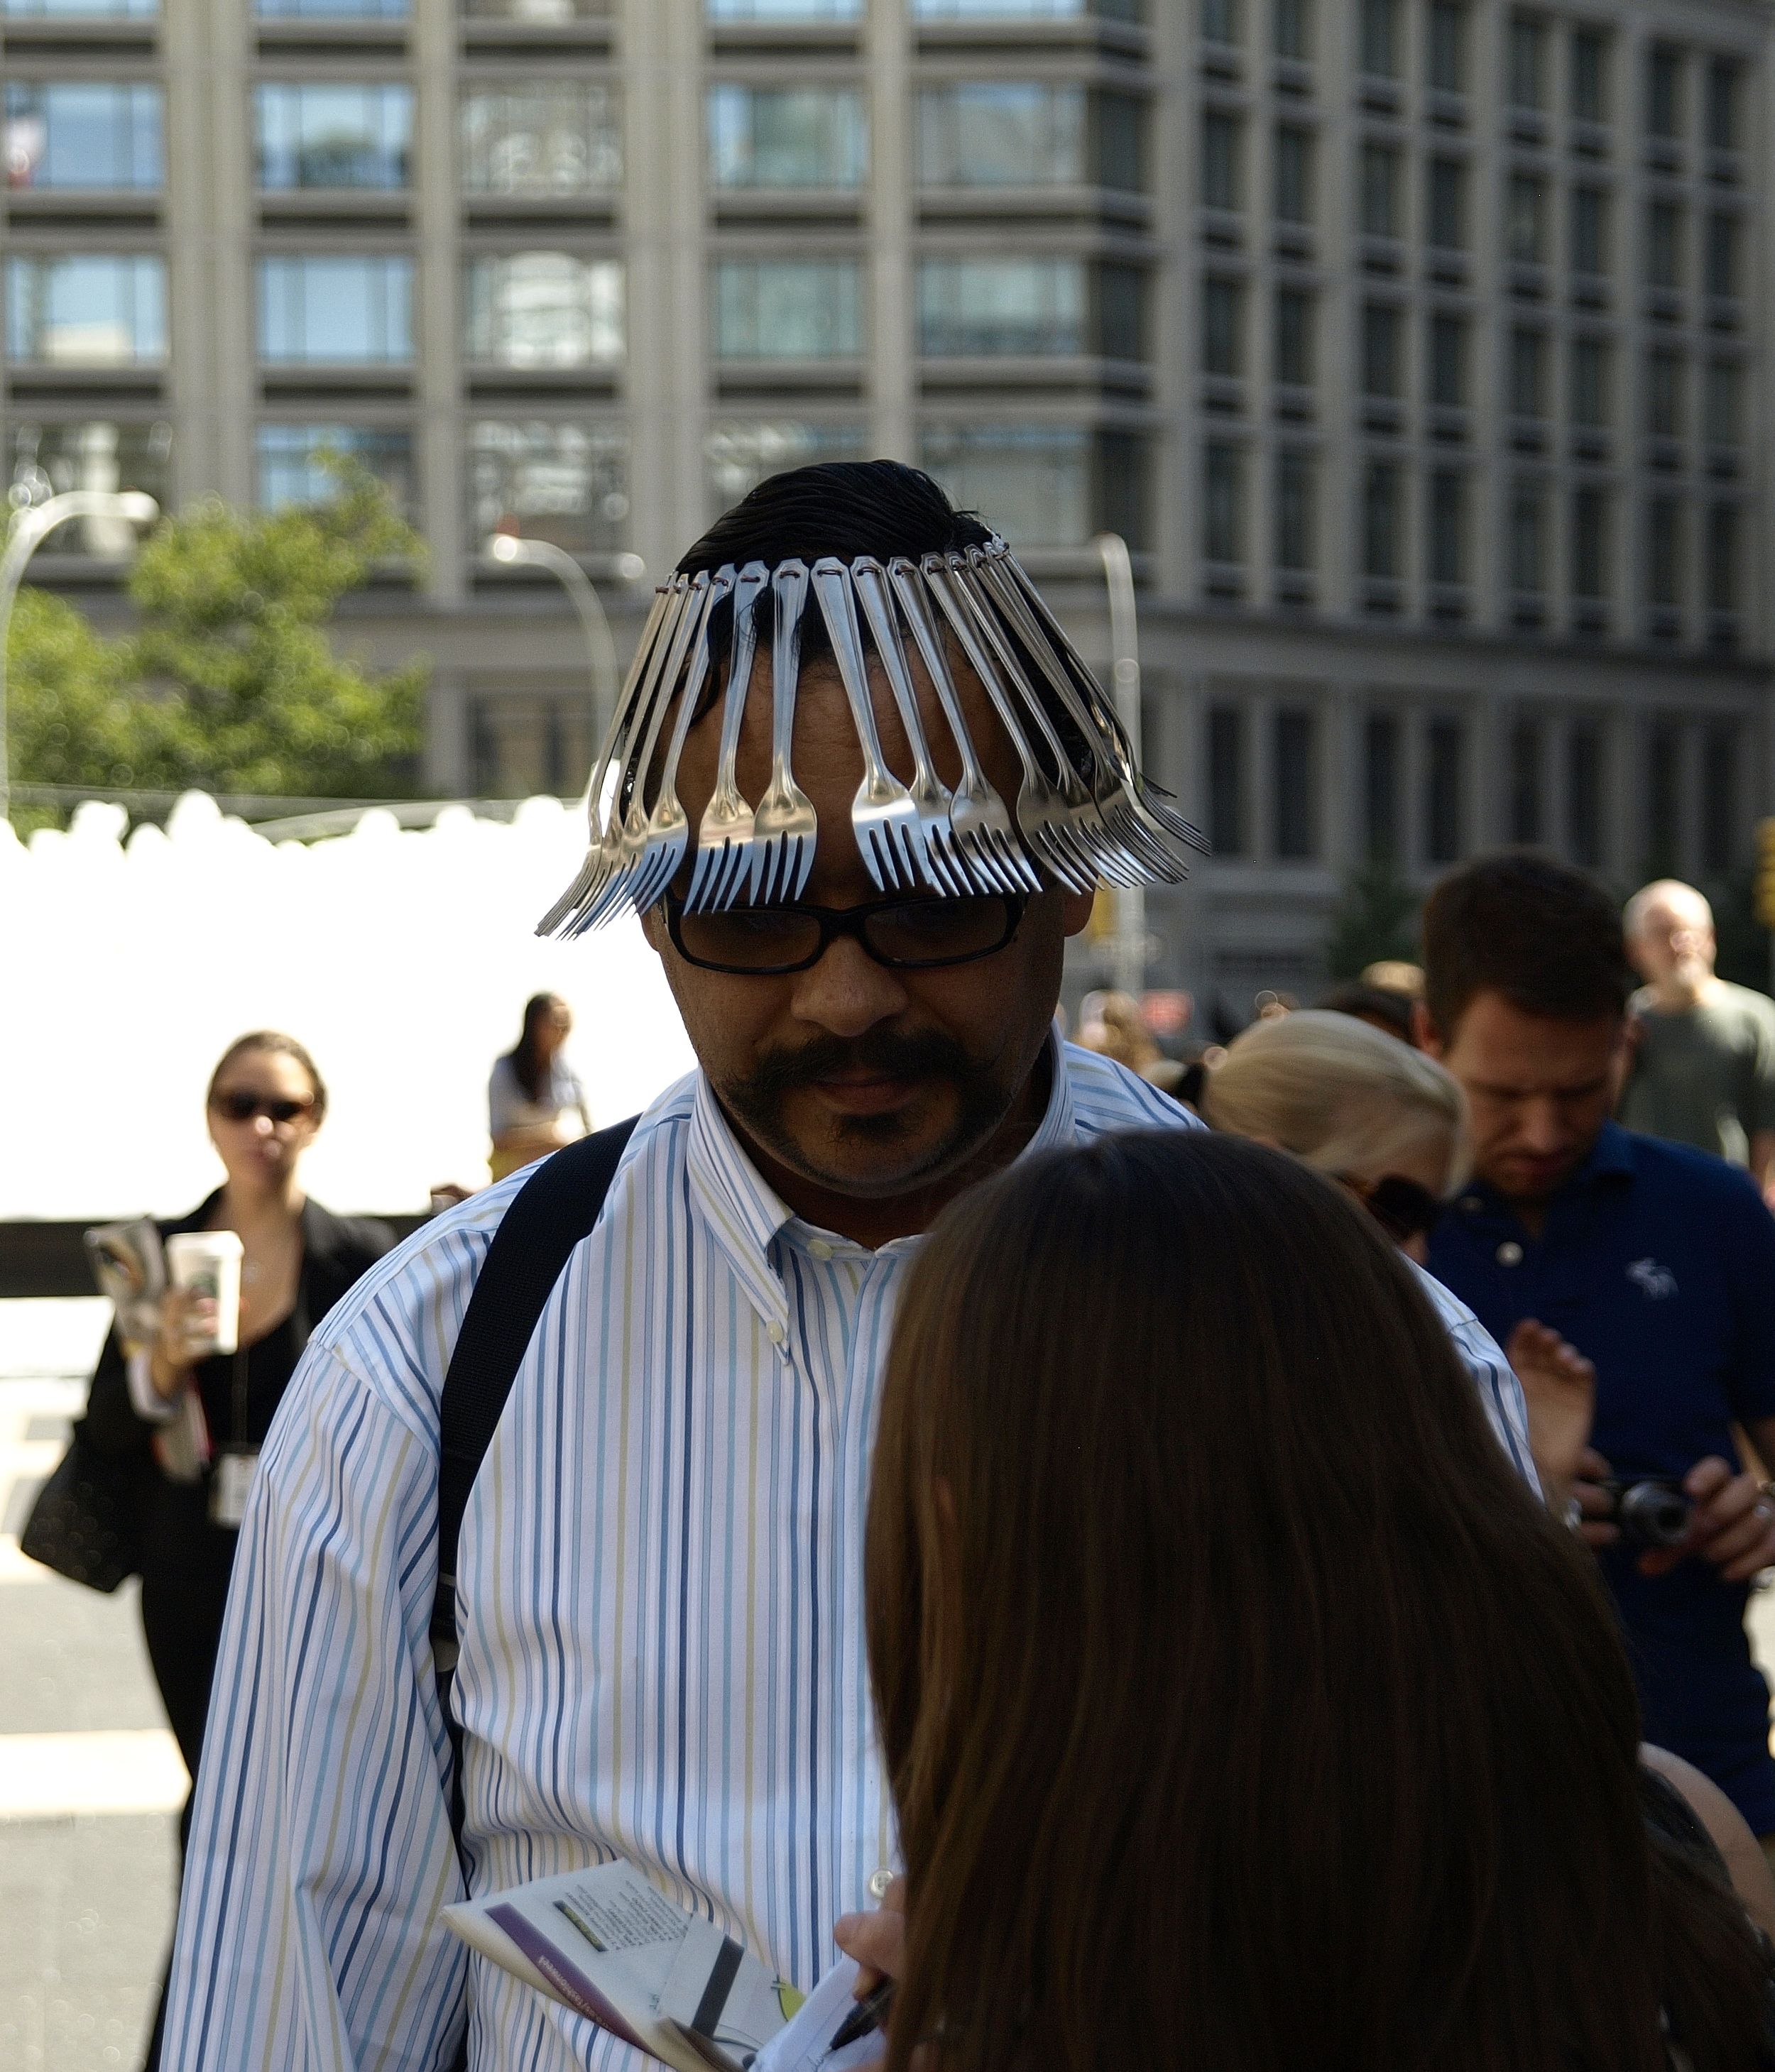 man-with-forks-on-his-head.jpg